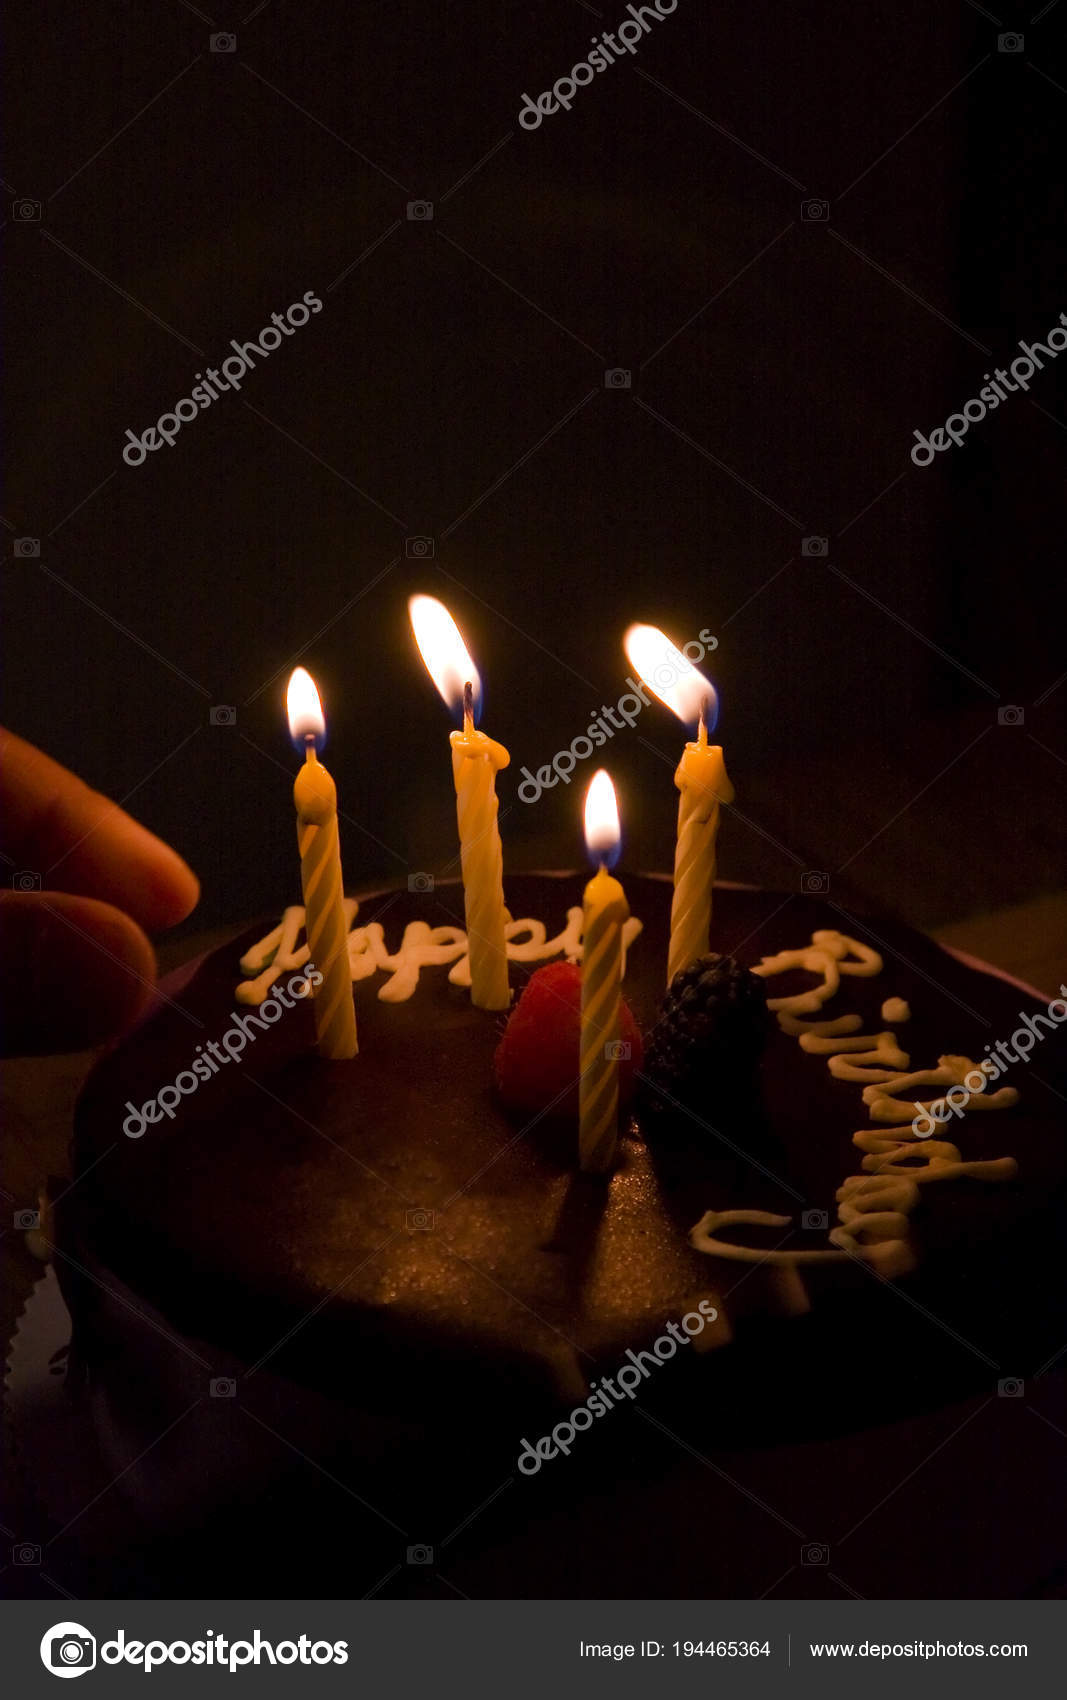 Happy Birthday Cake Burning Candles Stock Photo Surpasspro